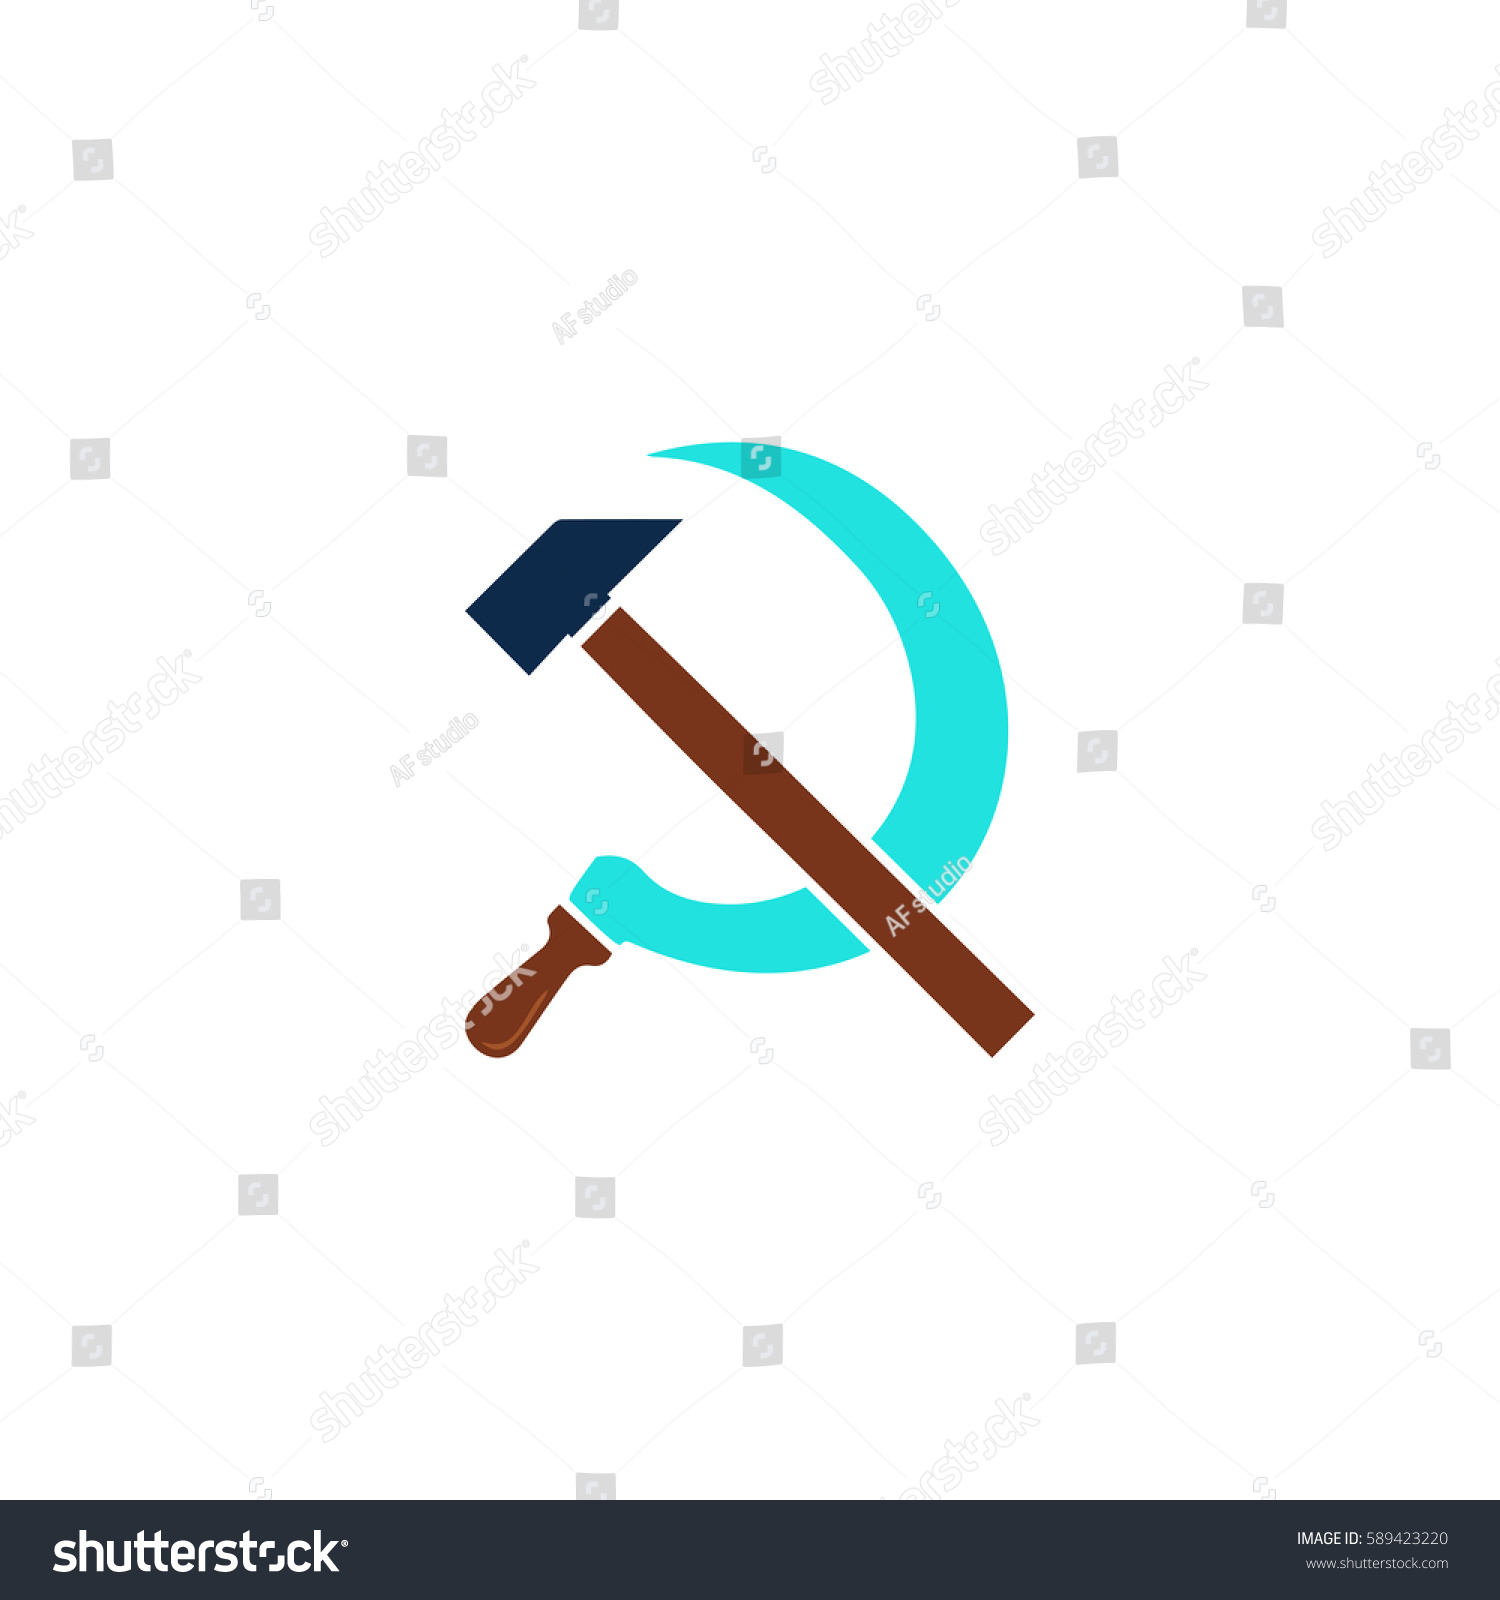 Hammer sickle color symbol icon on stock vector 589423220 hammer sickle color symbol icon on stock vector 589423220 shutterstock biocorpaavc Gallery